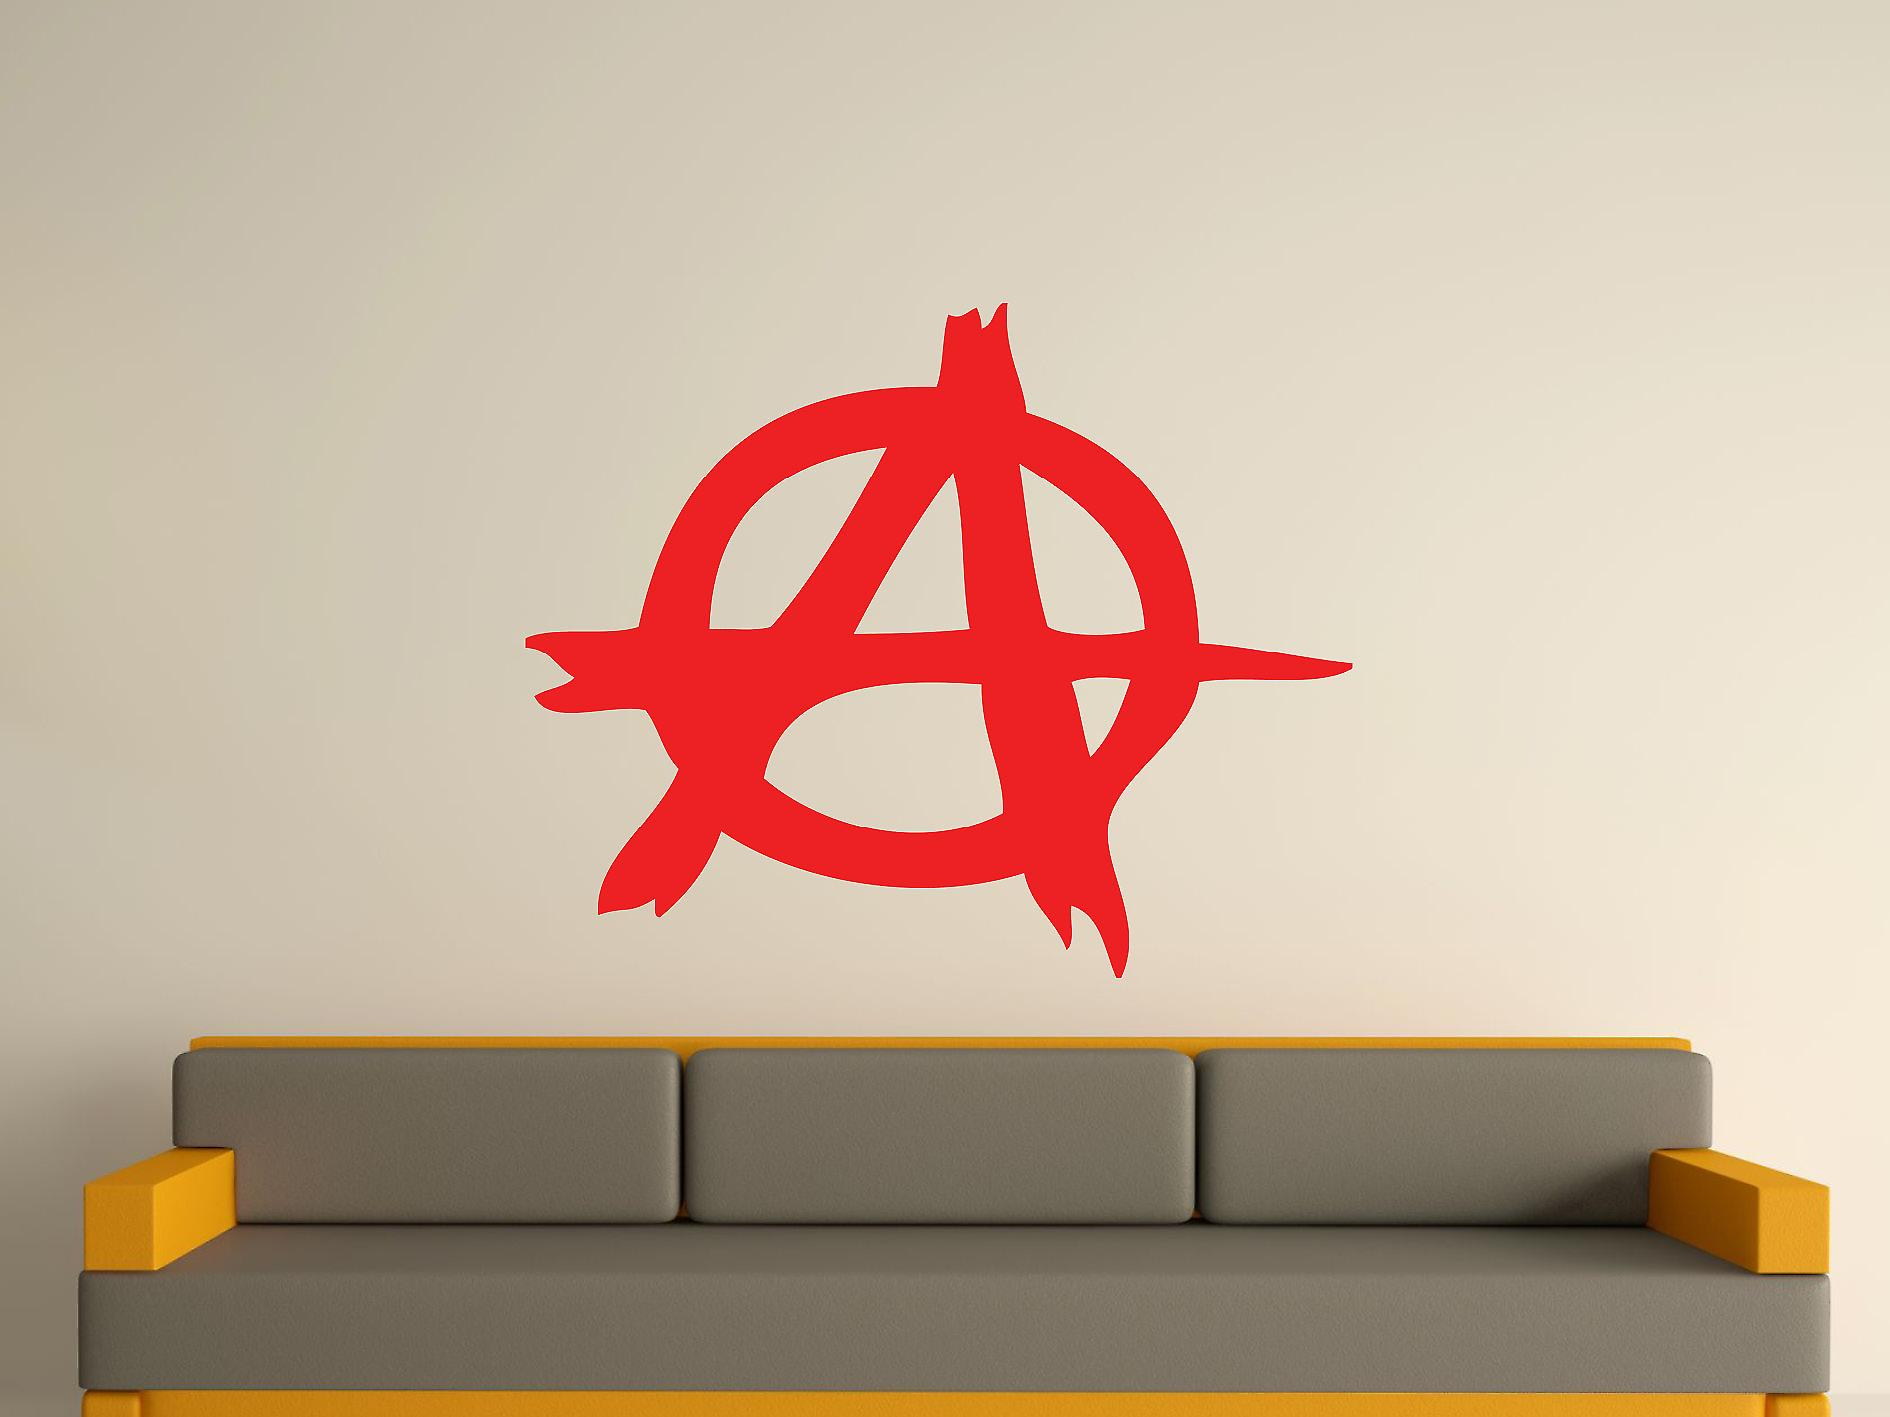 Anarchy symbool Wall Art Sticker - tomaat rood